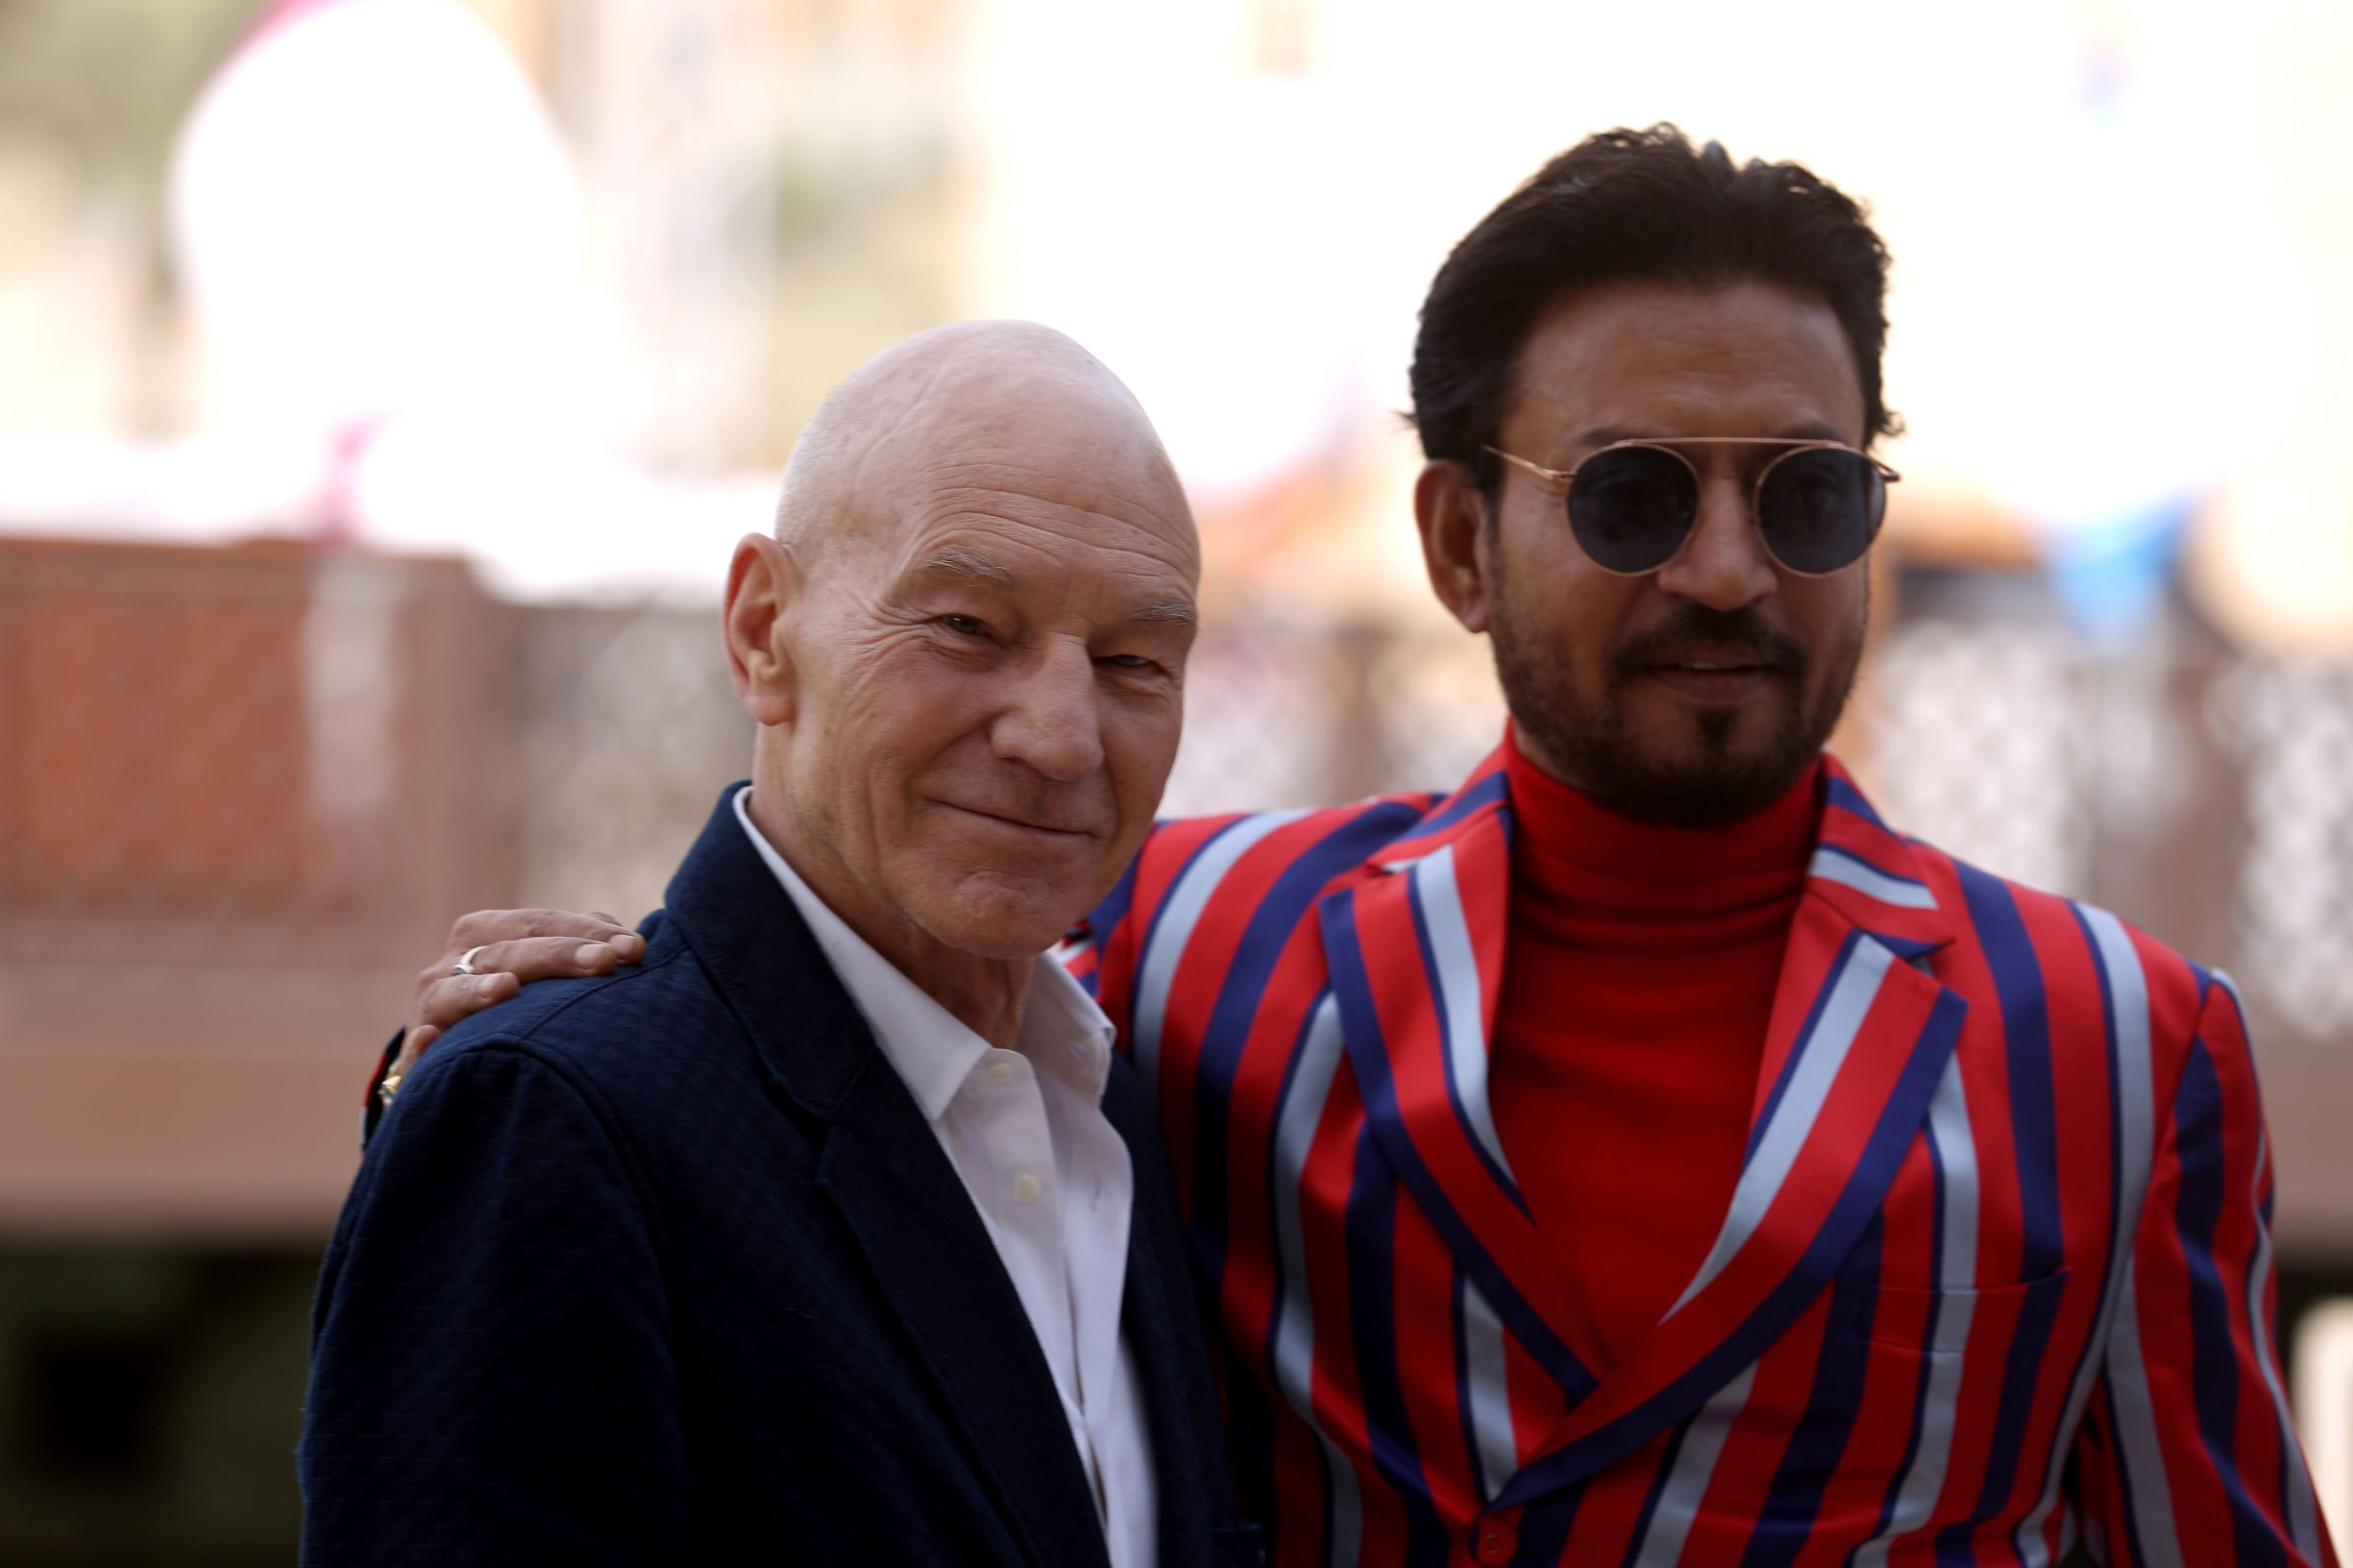 (FILES) In this file photo taken on December 08, 2017 British actor Sir Patrick Stewart and Indian actor Irrfan Khan pose during a photo call at the Dubai International Film Festival in Dubai. - Acclaimed Indian actor Irrfan Khan, whose international movie career included hits like